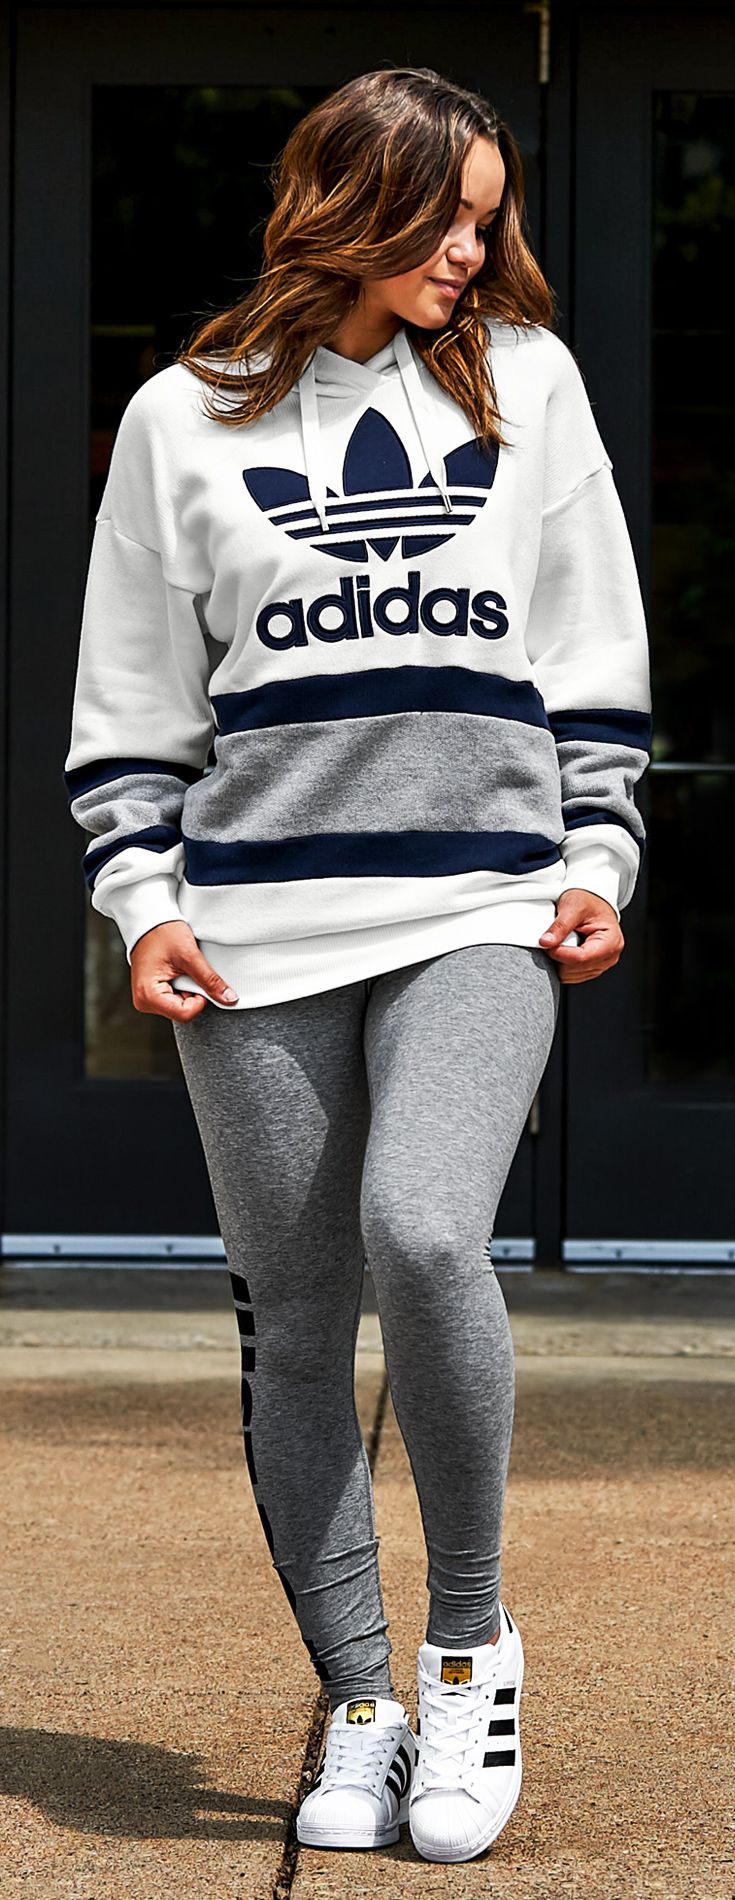 Weekly Women S Must Haves The Hottest Styles From The Top Brands Adidas Outfit Women Adidas Hoodie Outfit Adidas Outfit [ 1900 x 735 Pixel ]